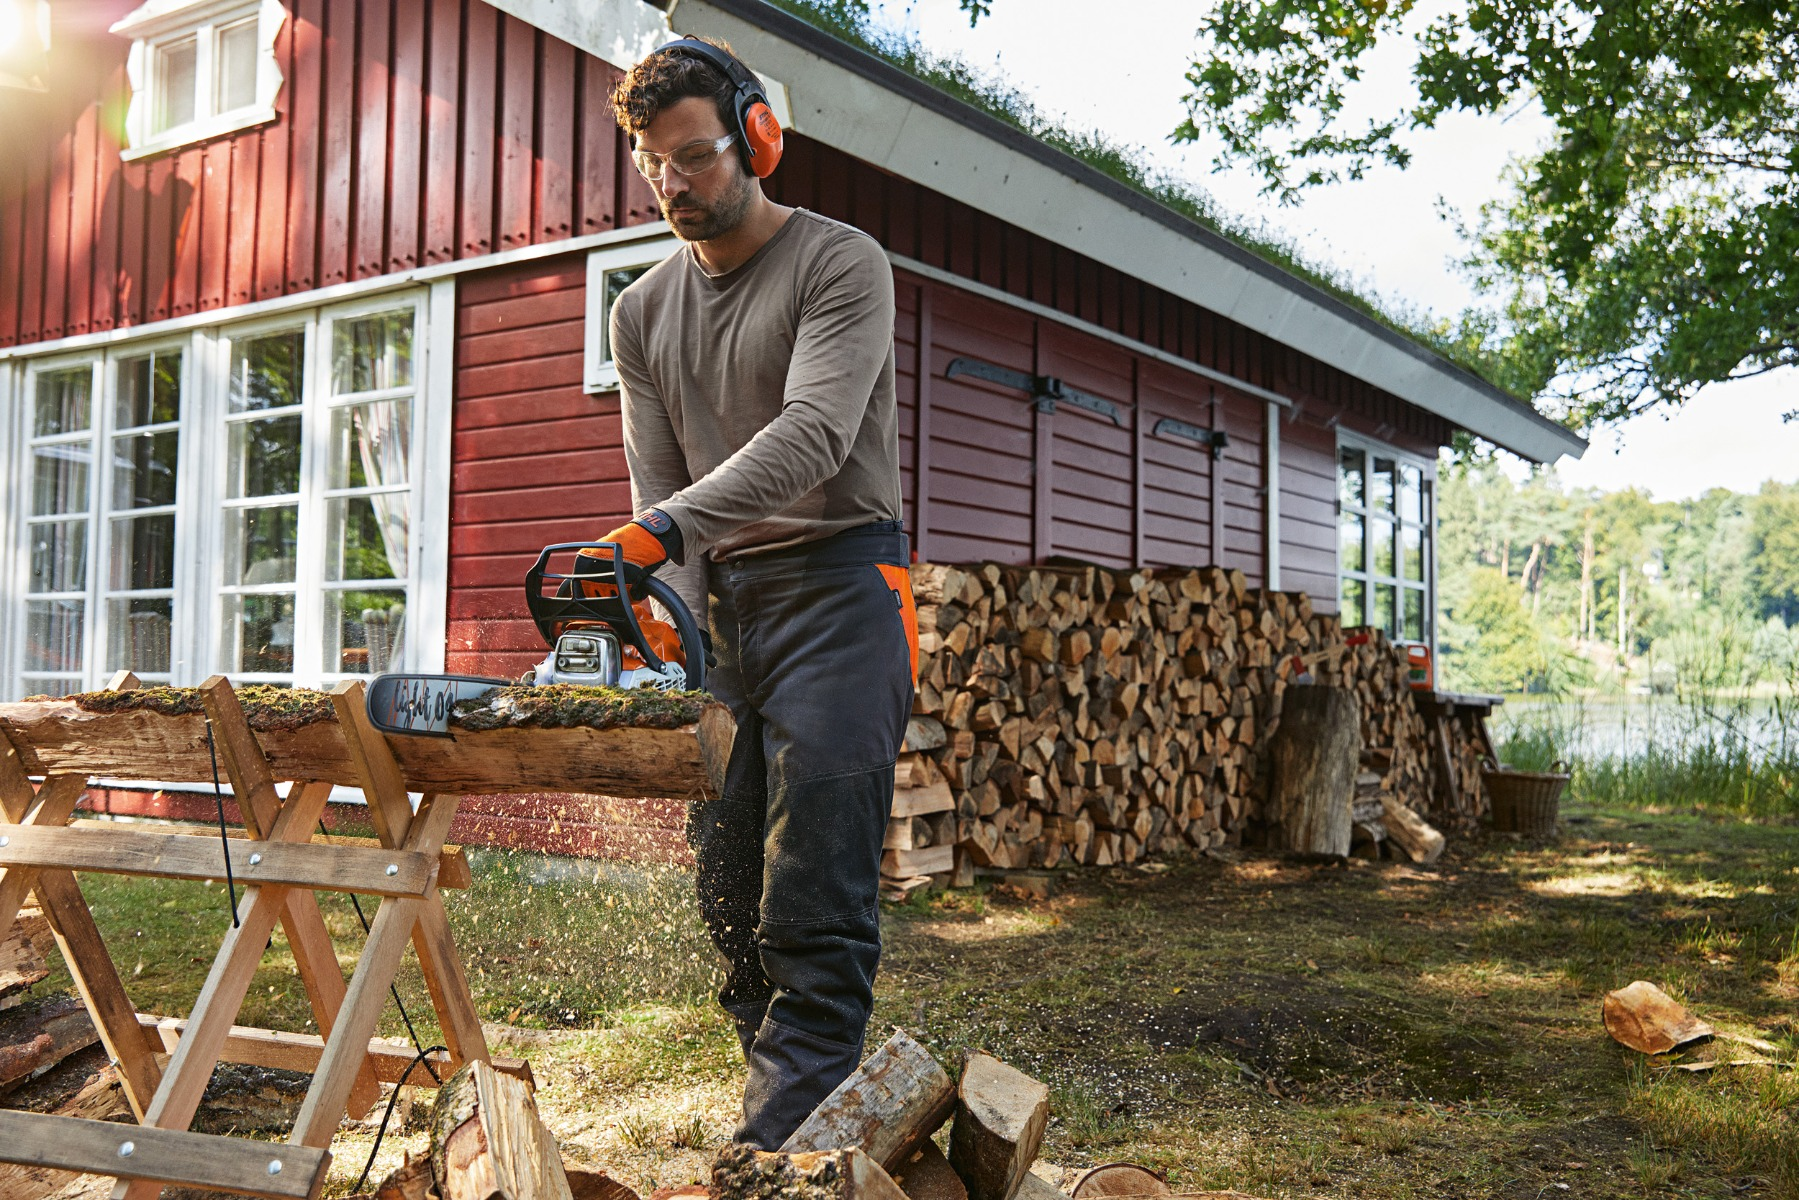 A man wearing Earmuffs,safety gloves and trousers, cutting log with his battery Chainsaw